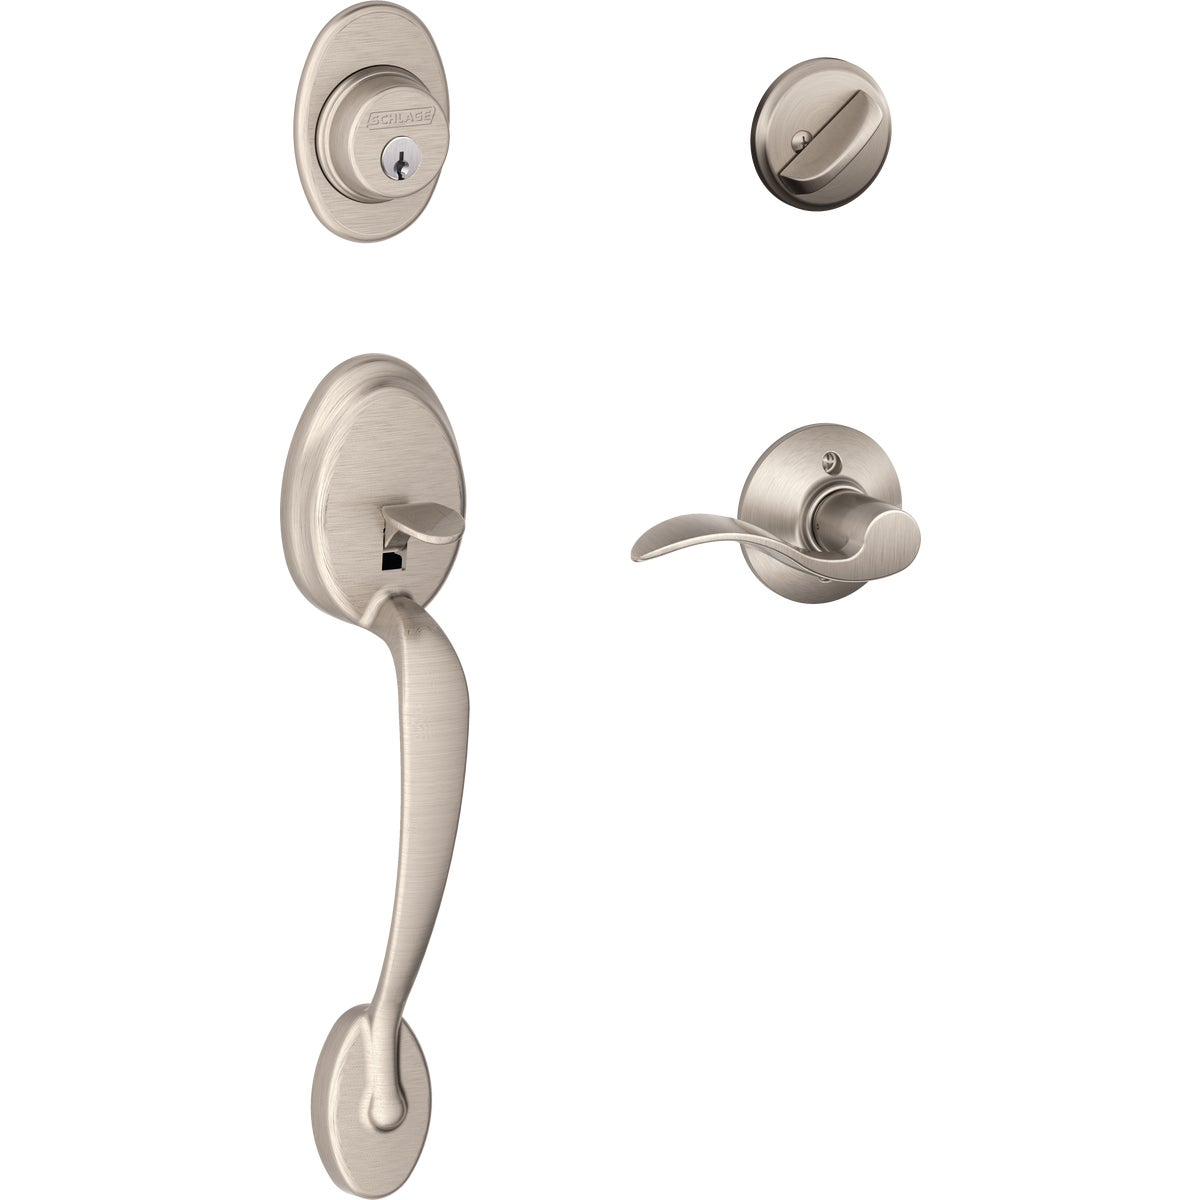 SN PLYMOUTH HANDLESET - F60VPLYXACC619 by Schlage Lock Co